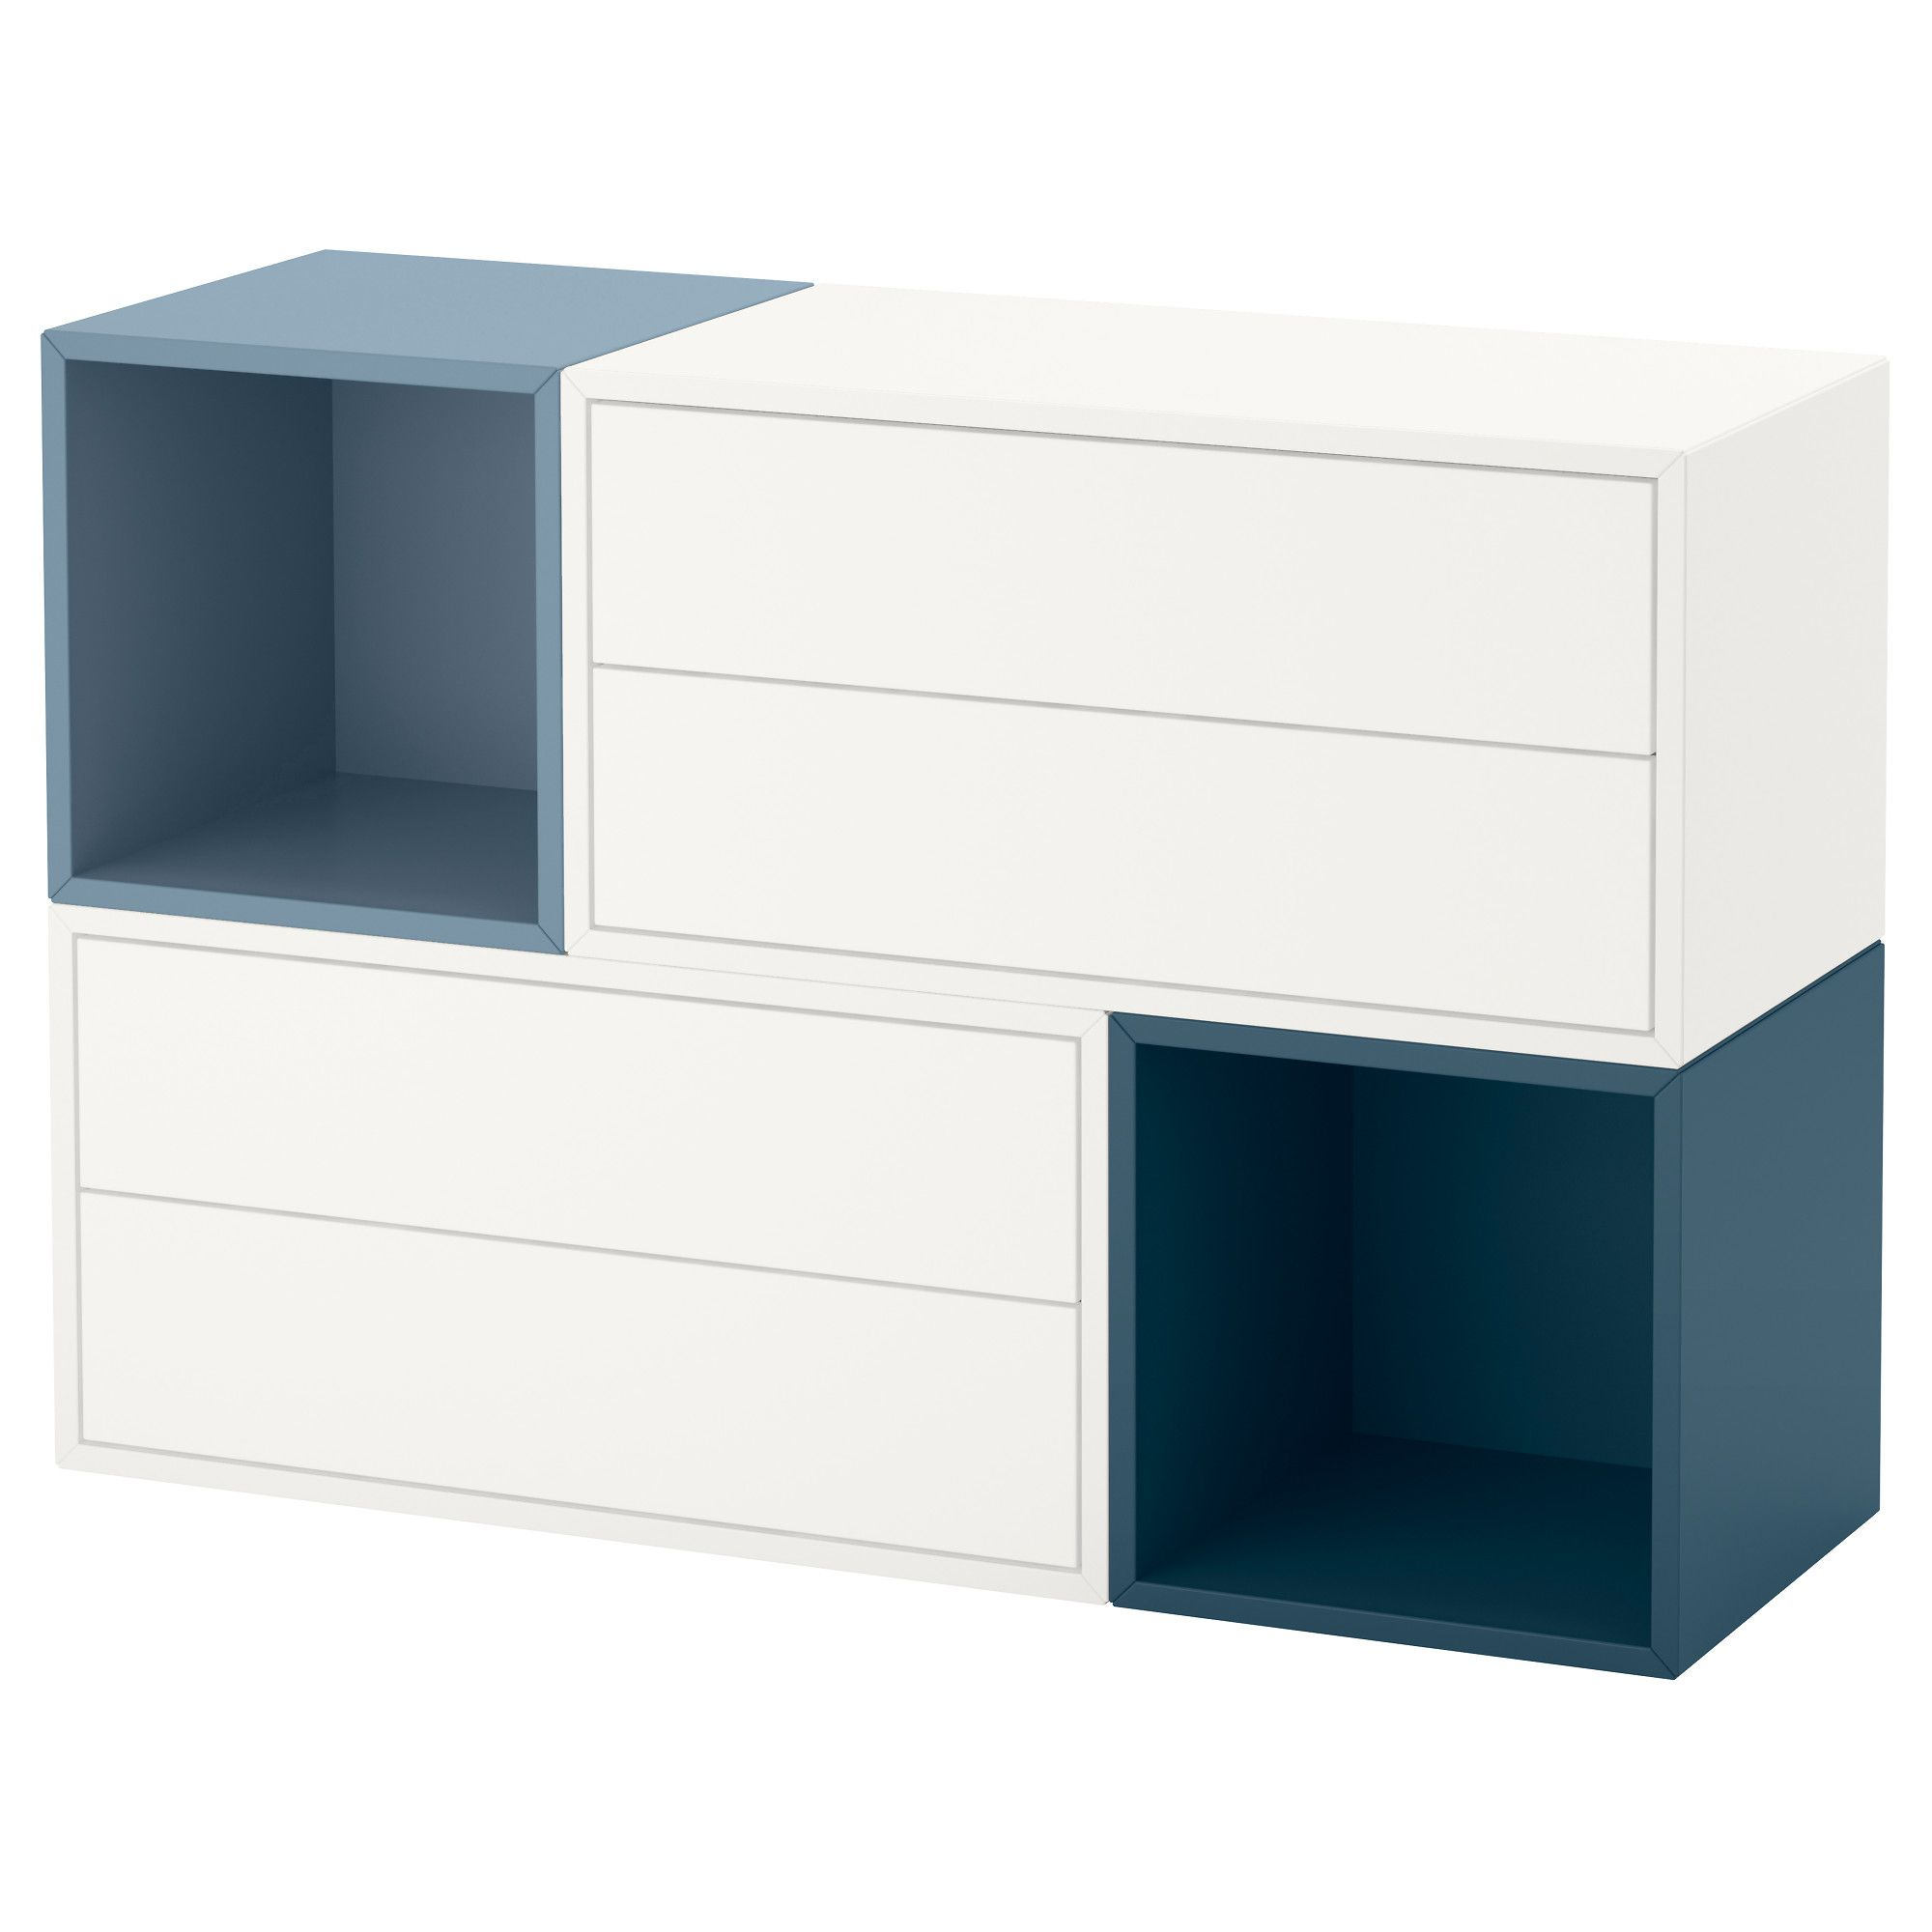 EKET Wall-mounted cabinet combination White/light blue/dark blue 105x35x70 cm | Ikea eket, Wall ...